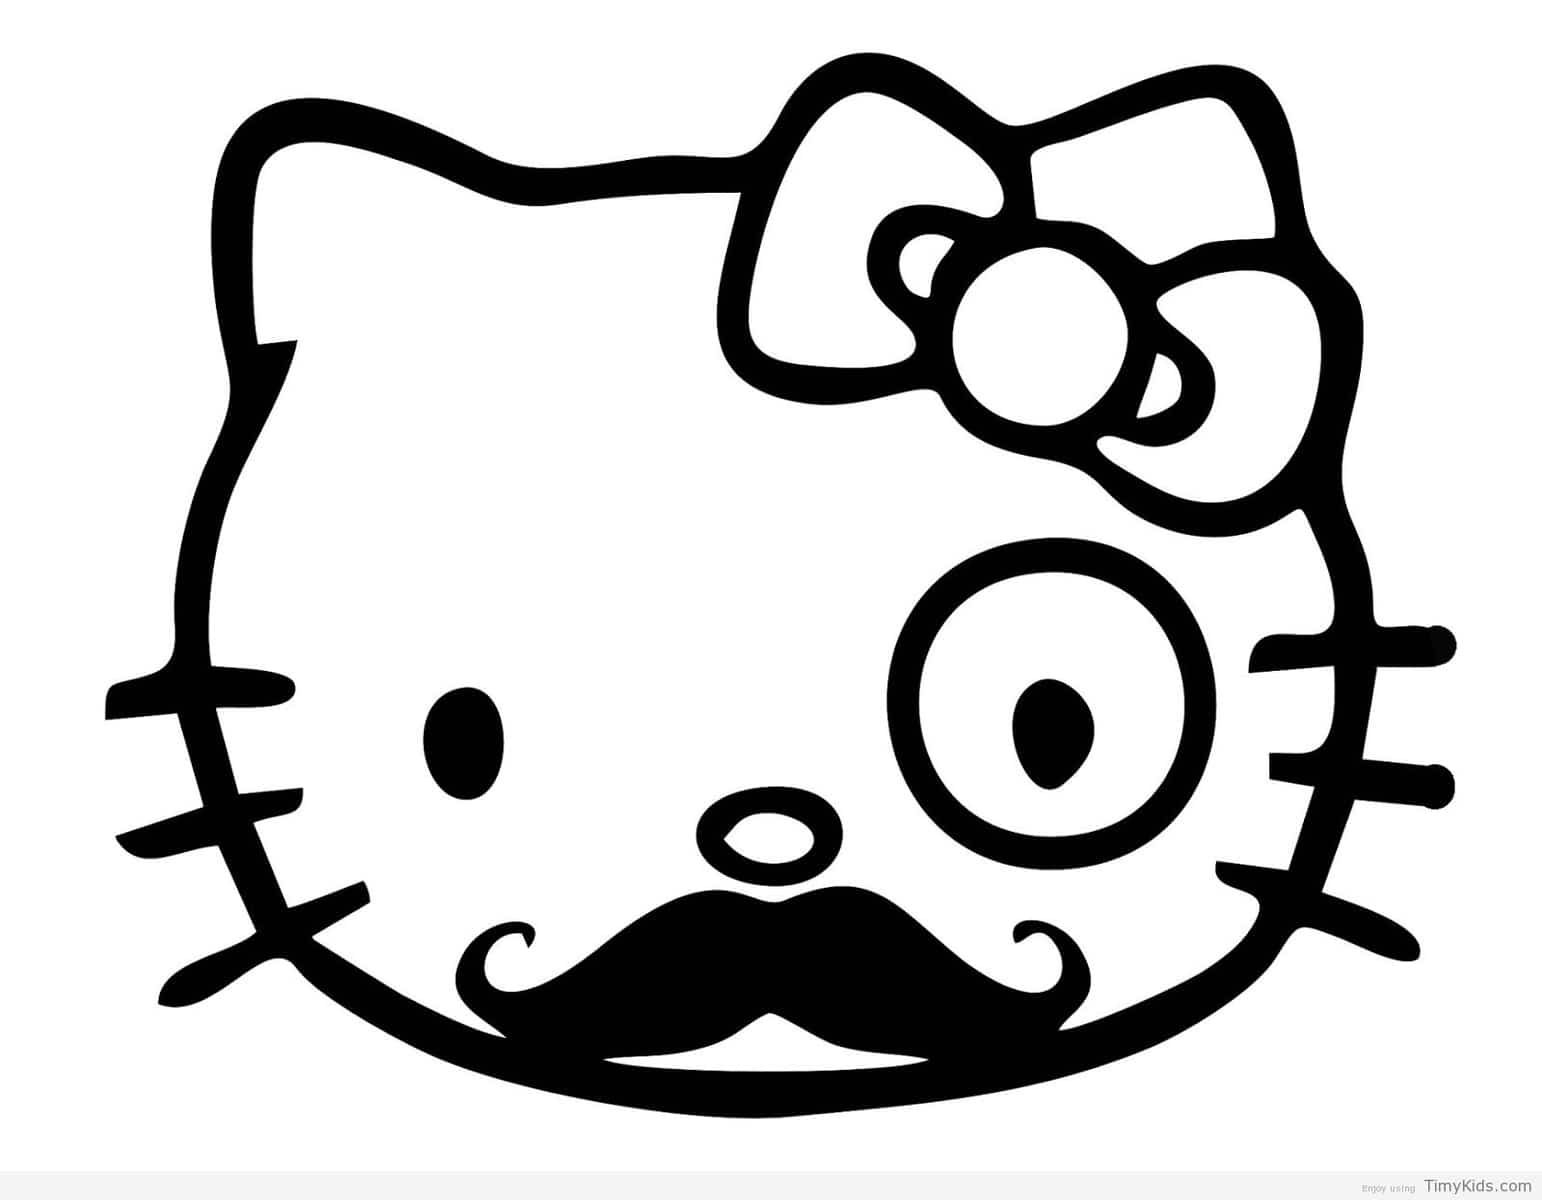 Timykids Hello Kitty Nerd Coloring Pages